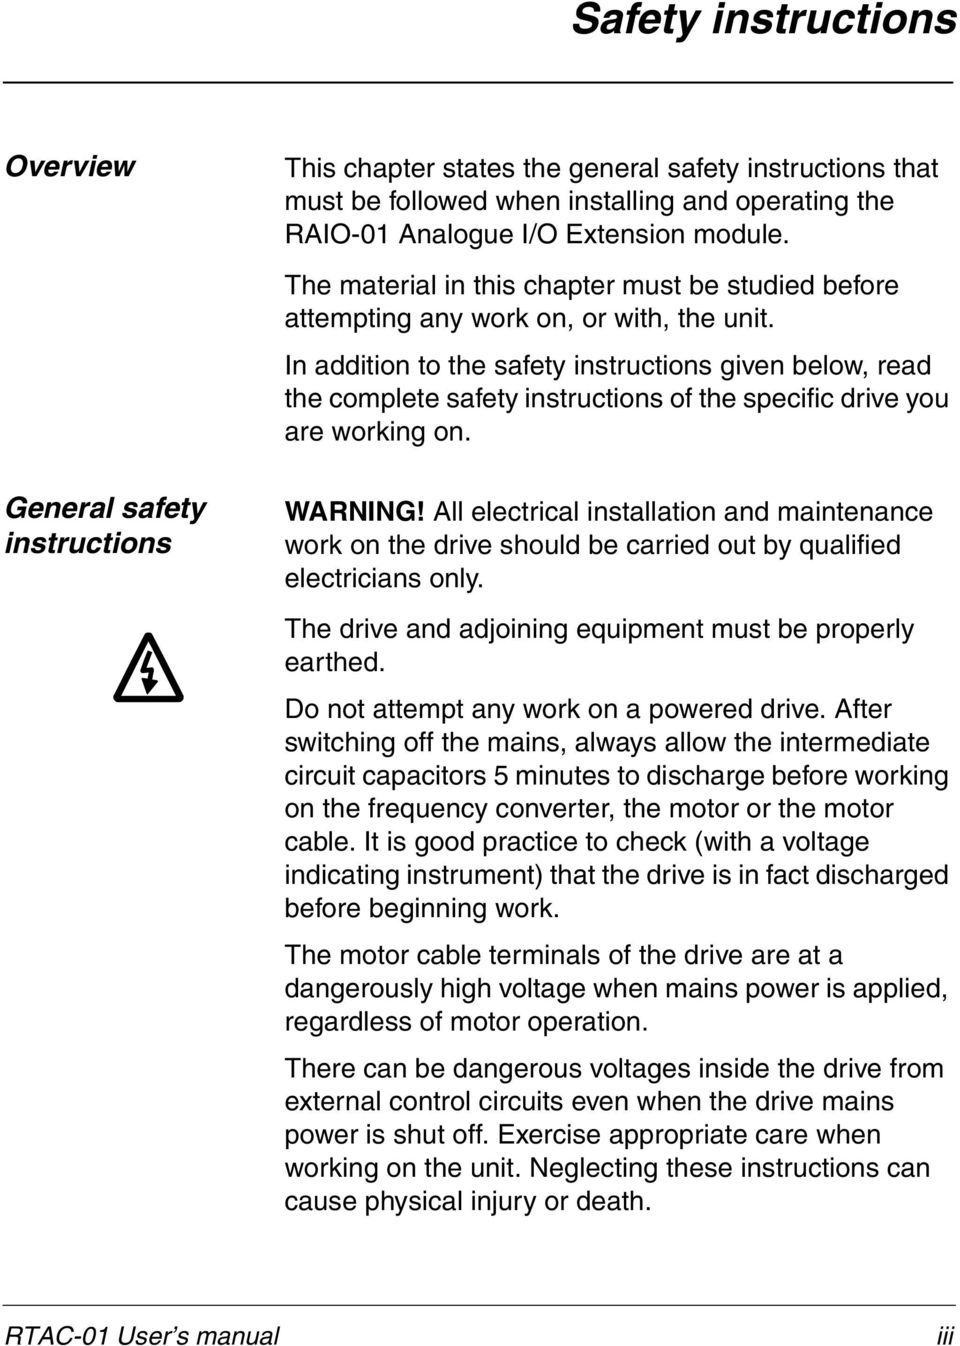 In addition to the safety instructions given below, read the complete safety instructions of the specific drive you are working on. WARNING!